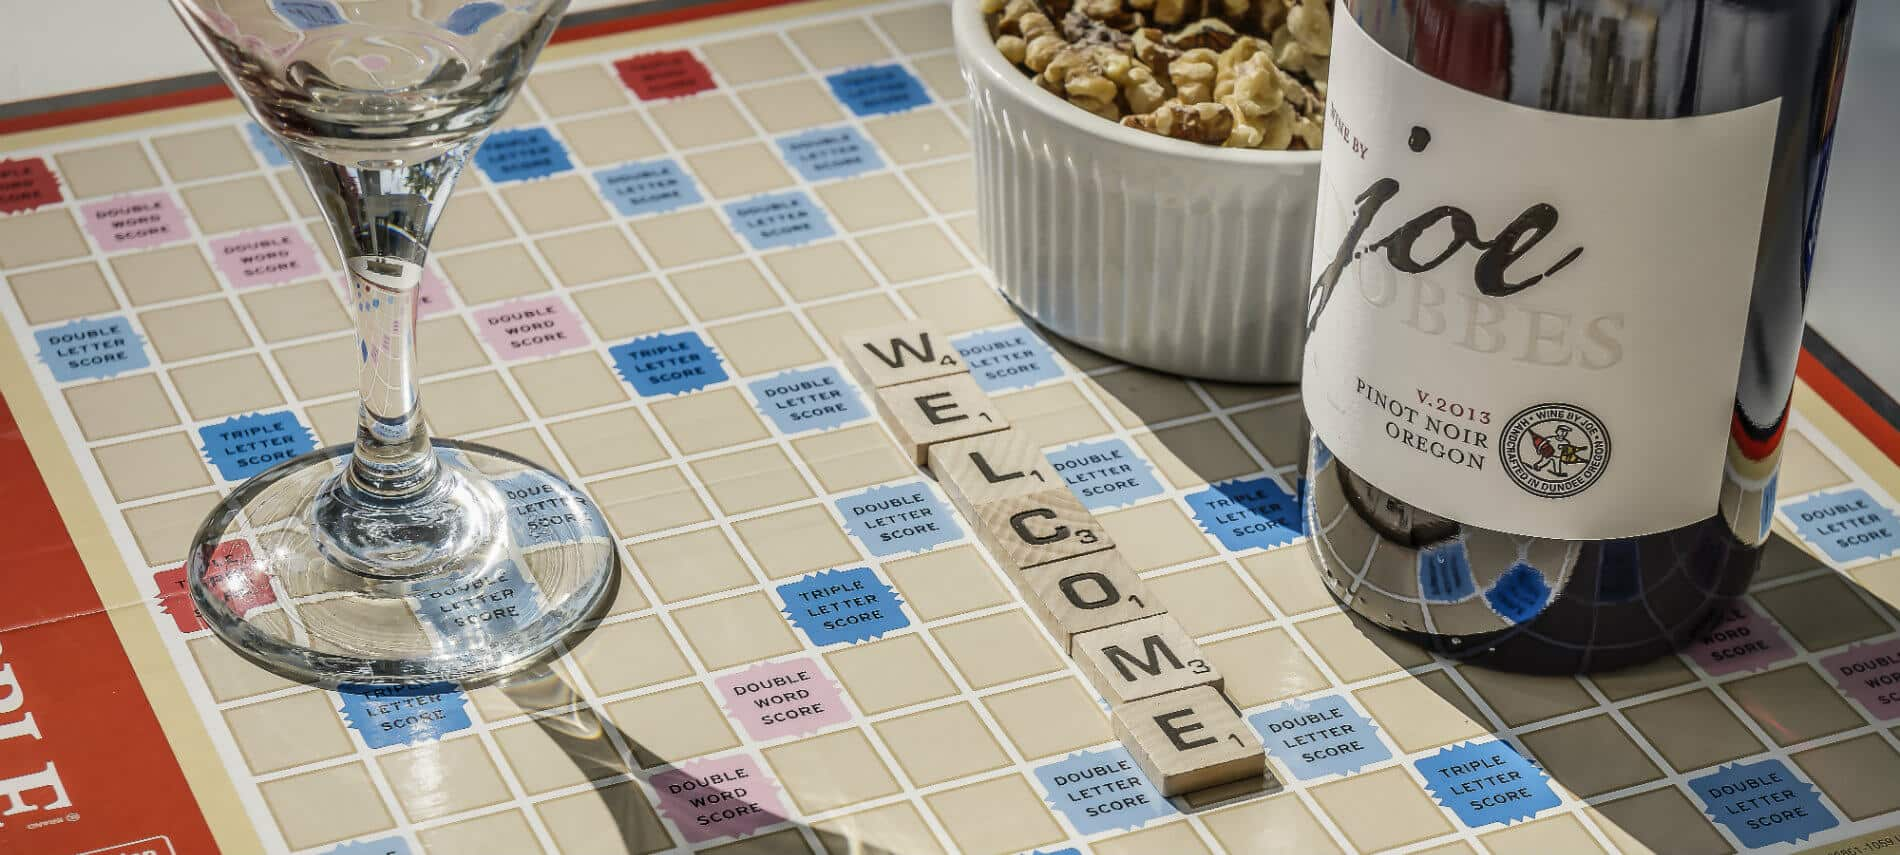 A crystal wine glass and a bottle of wine sit on a scrabble board with the word welcome spelled out